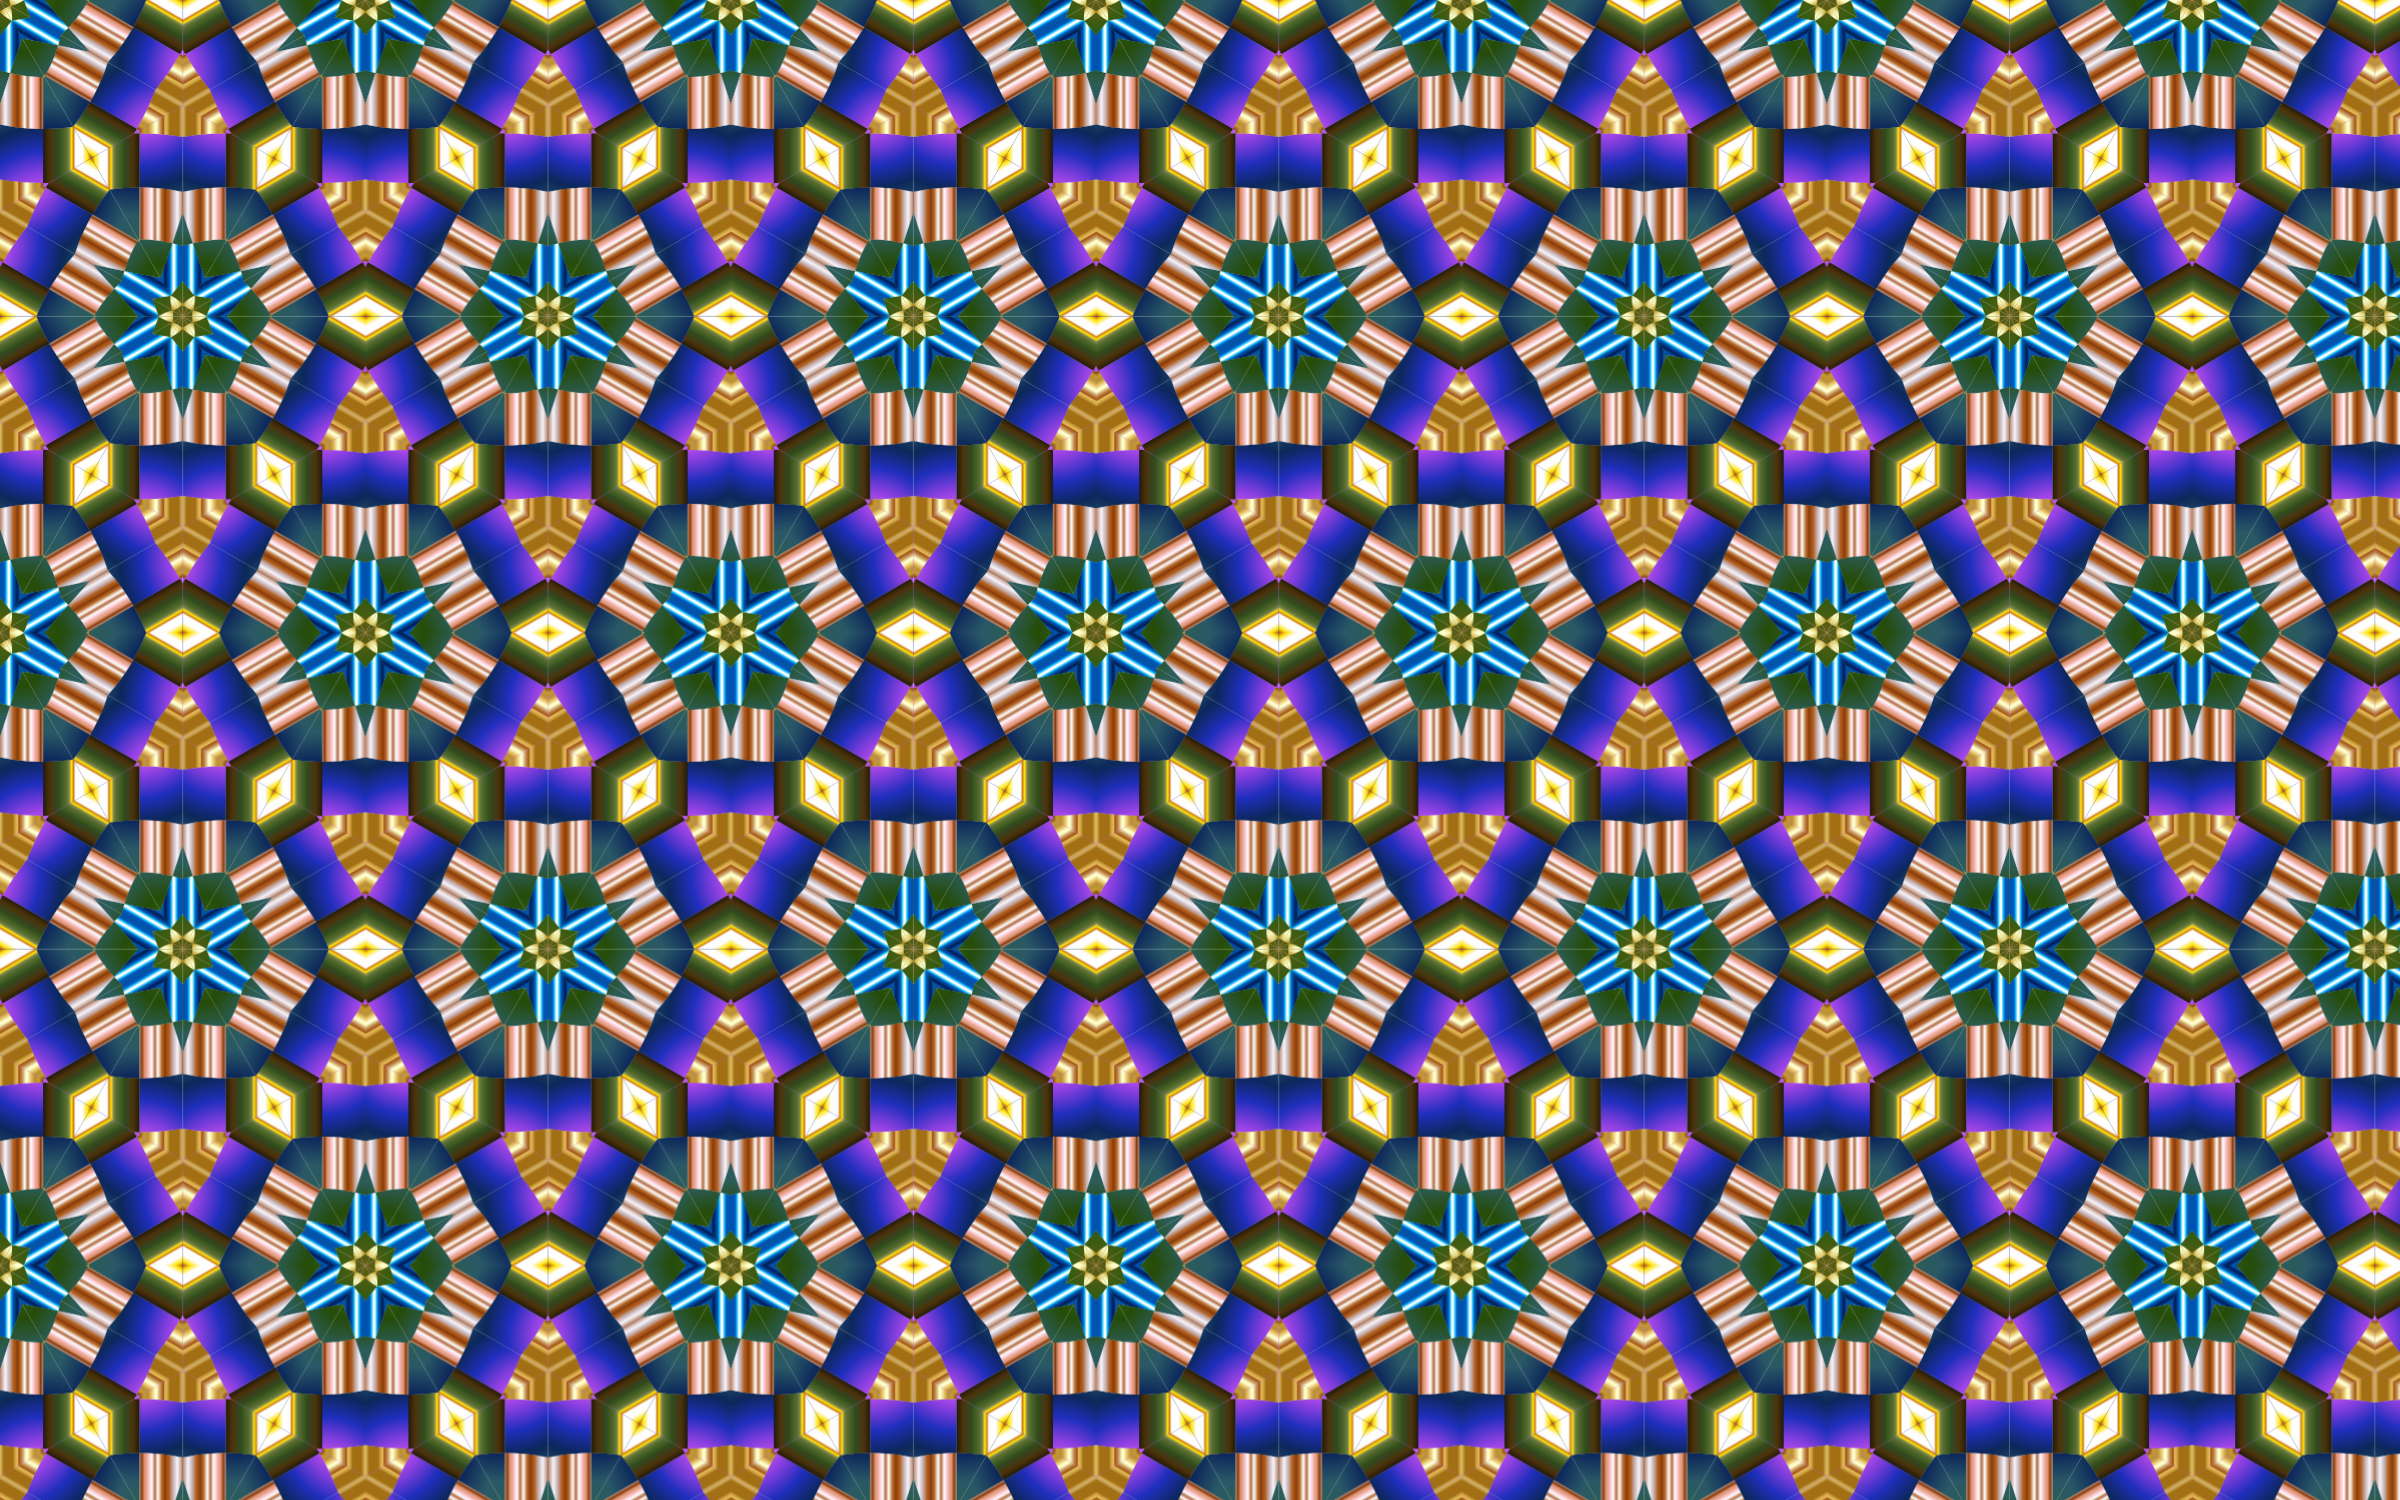 Seamless Pattern 83 by GDJ